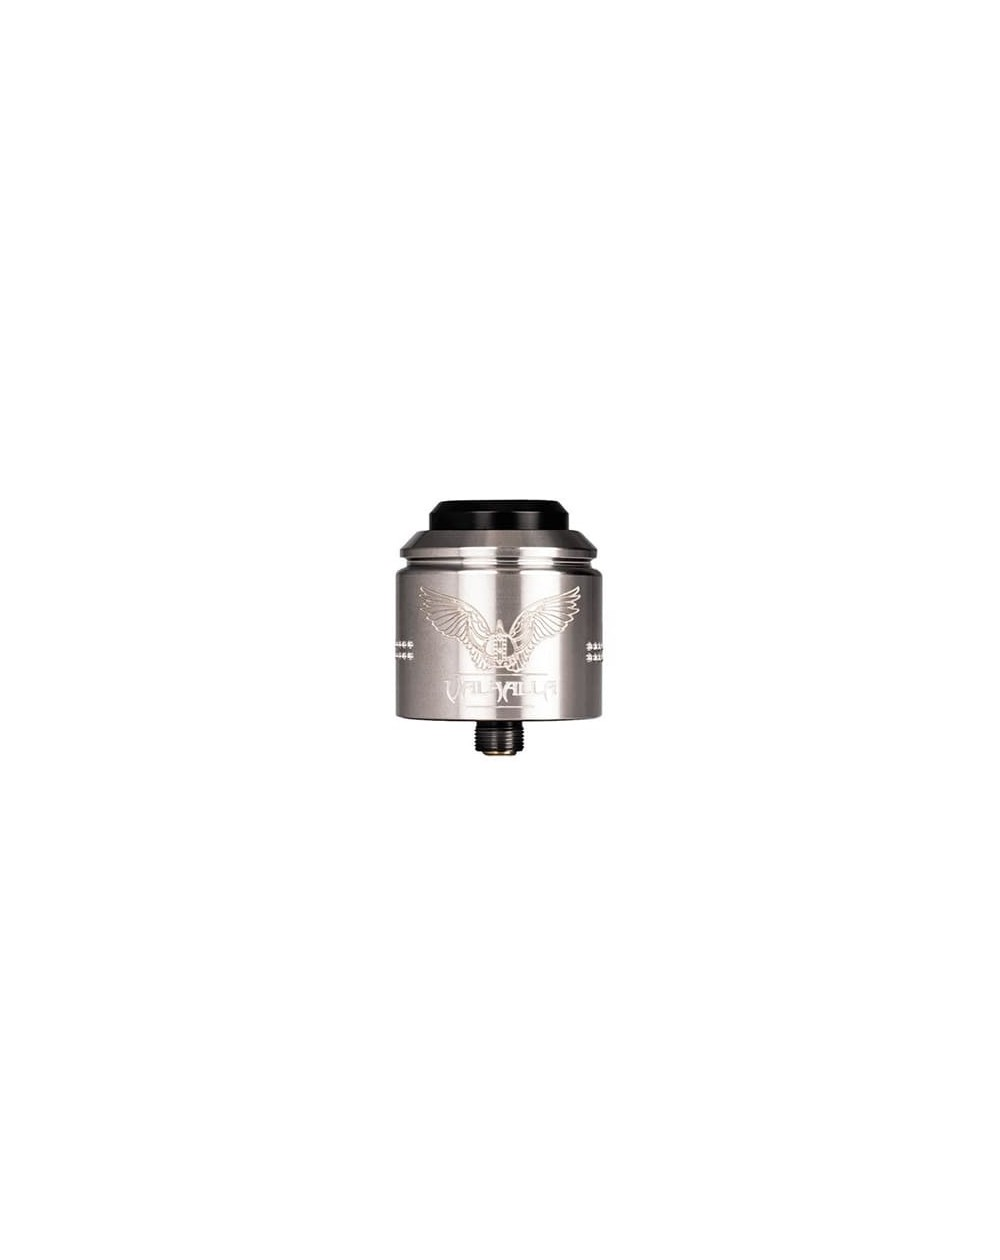 Valhalla Nightmare RDA - Vaperz Cloud-2